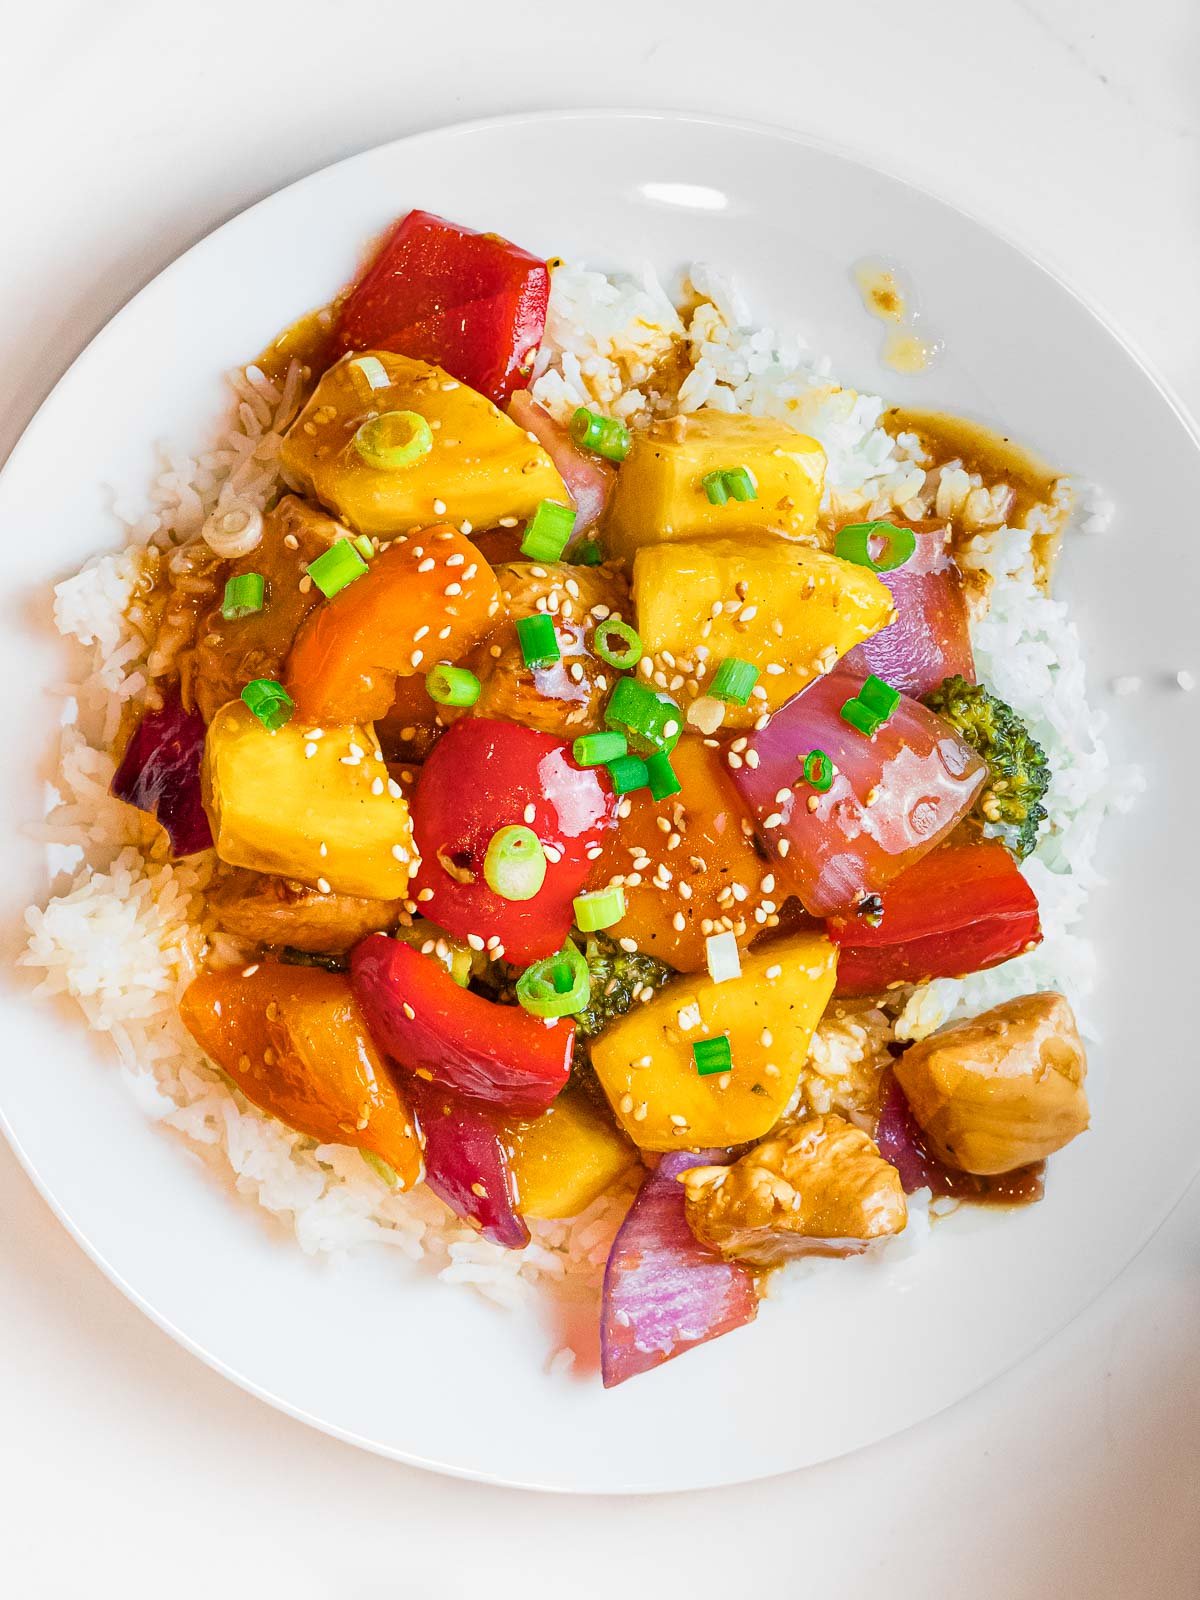 summer pineapple chicken stir fry with red peppers and pineapple chunks over rice